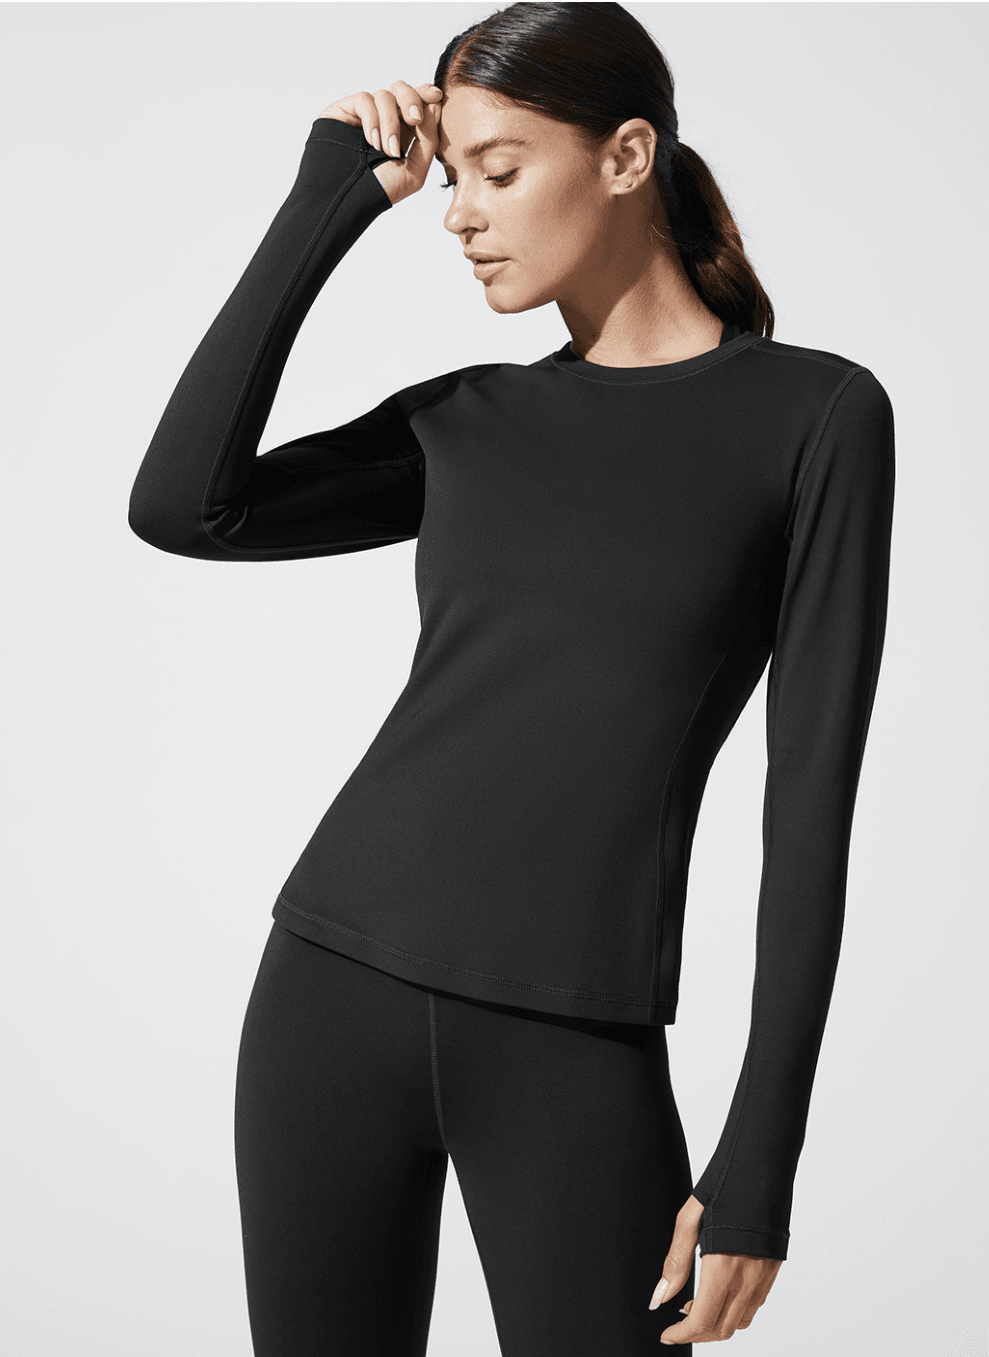 CARBON38 Long Sleeve Top in Diamond Compression / Neighborhood Goods